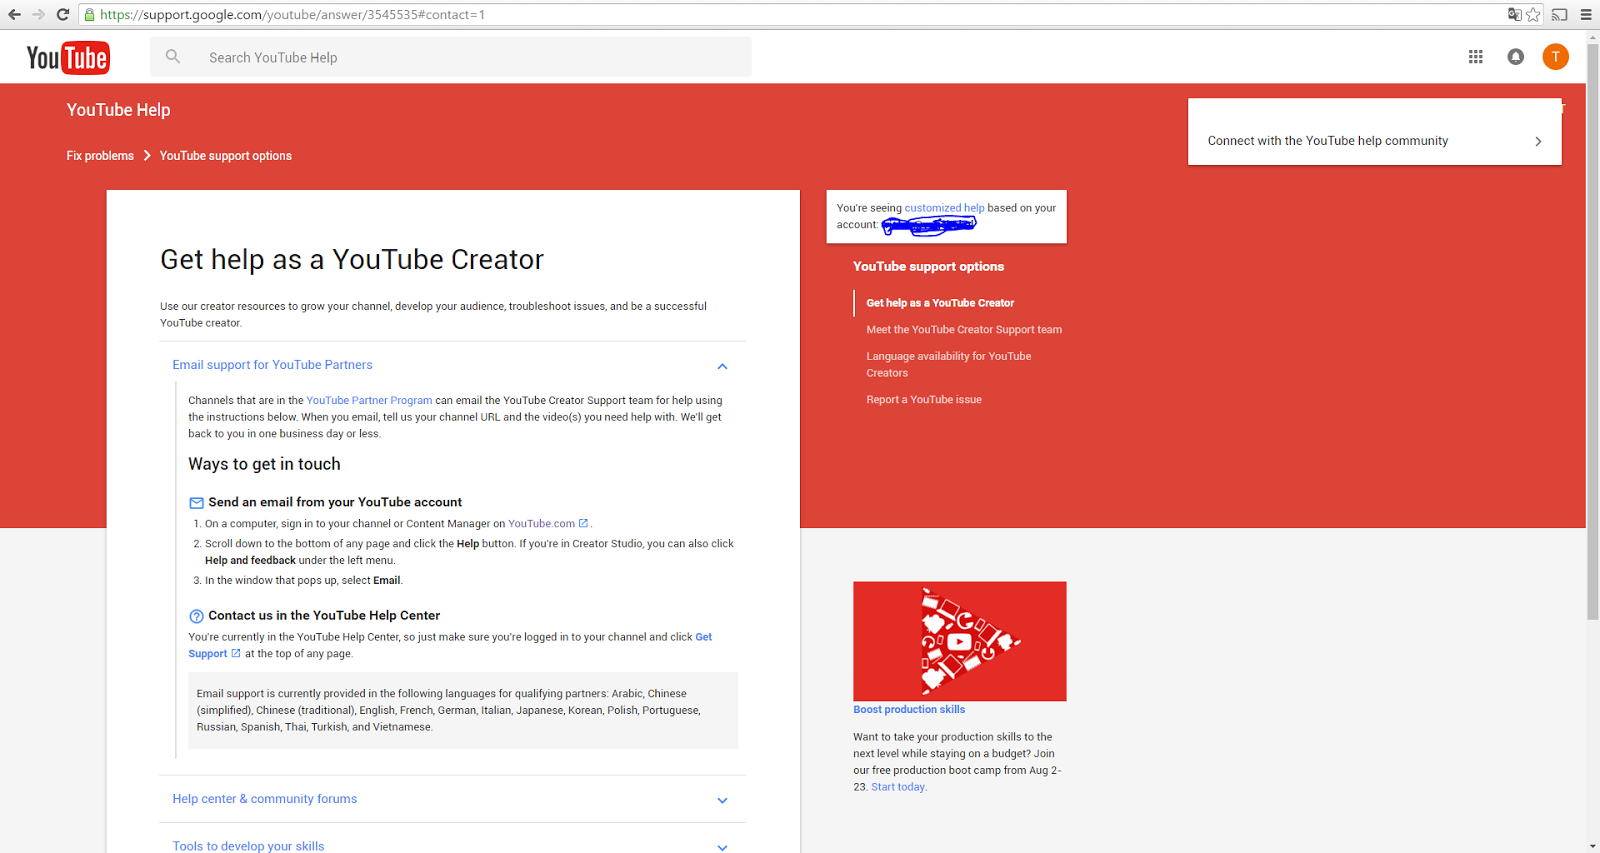 Trying to contact YouTube as a YouTube partner, but can't find the ...